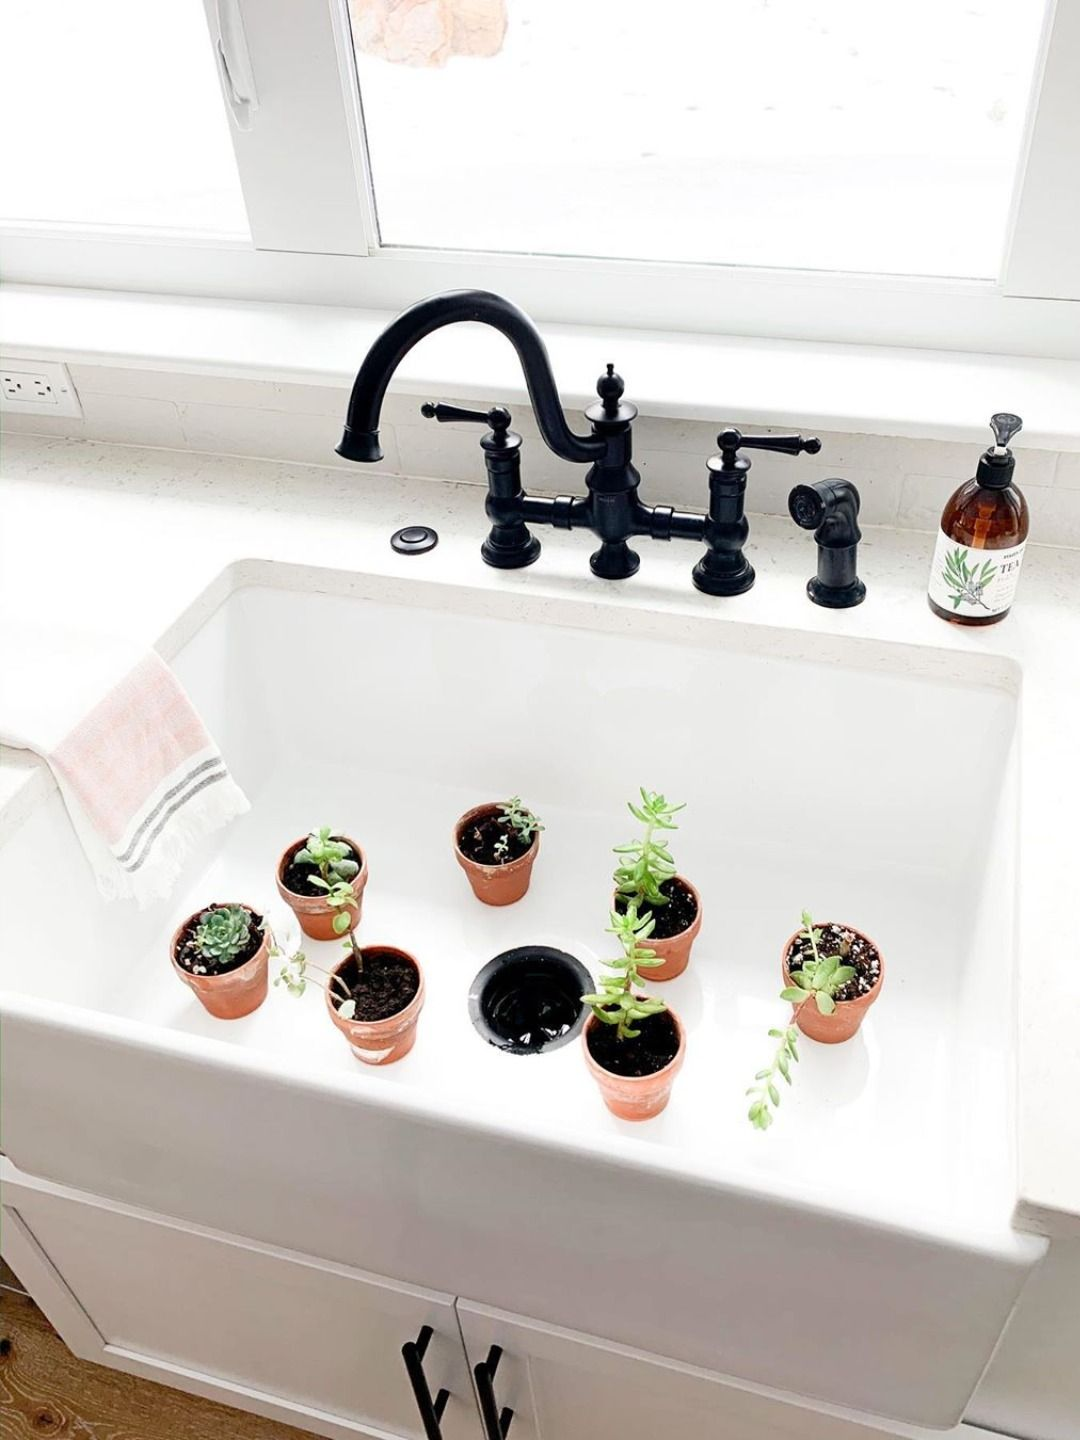 National Plant a Flower Day in 2020 Sink, Installation